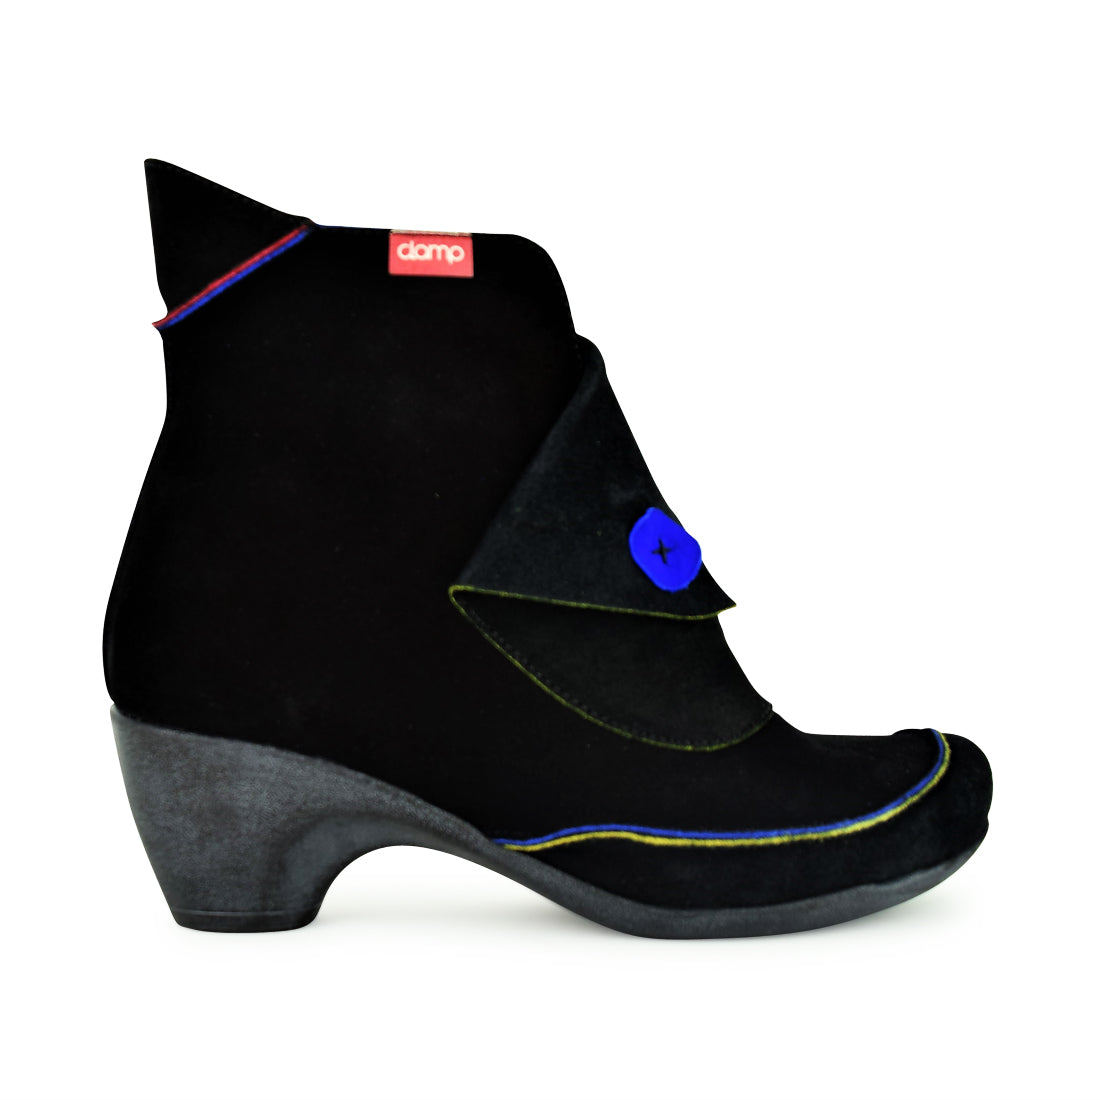 DANA - Clamp Ankle Boots Black Suede Multi